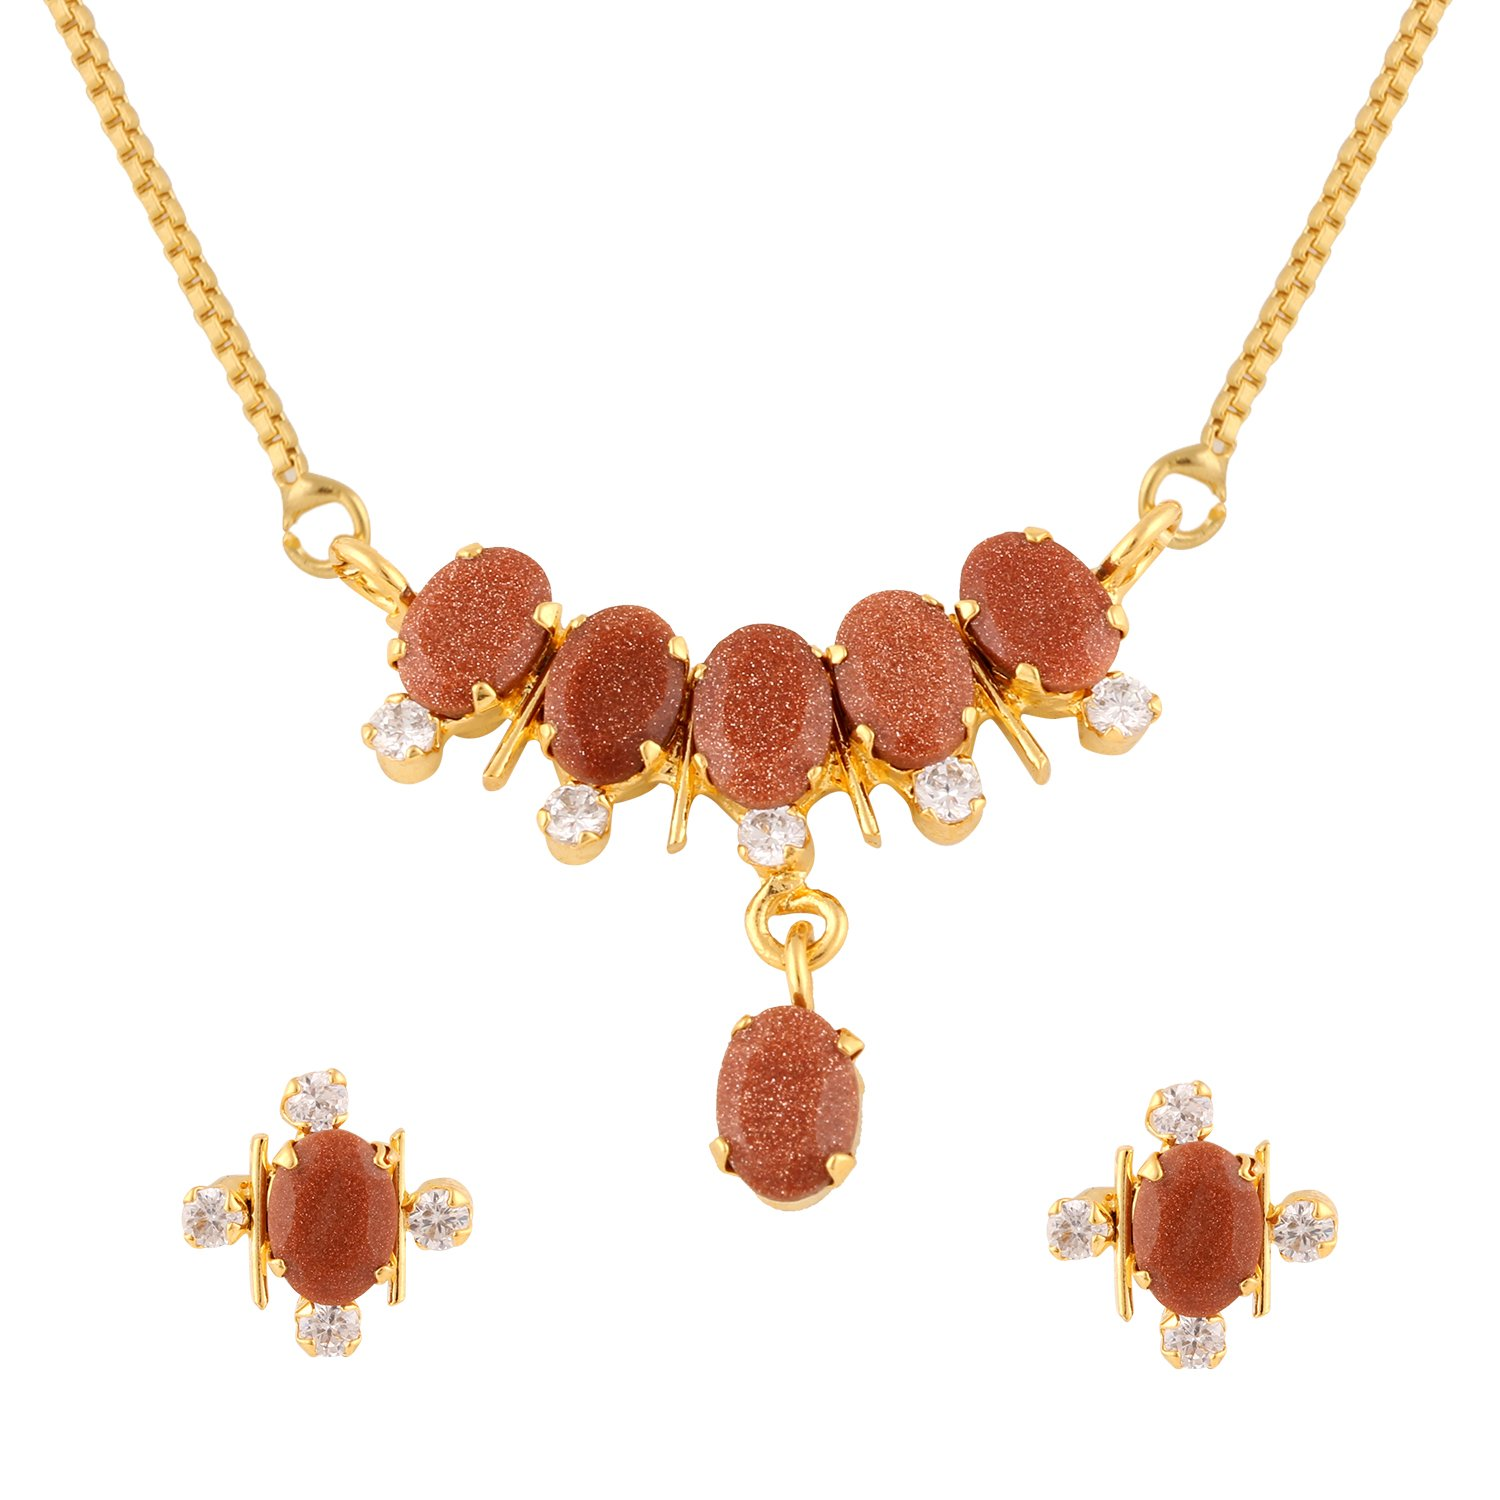 Efulgenz Gold Tone Indian Bollywood Ethnic Brown Traditional Pendant Necklace with Chain and Earrings Jewelry for Women